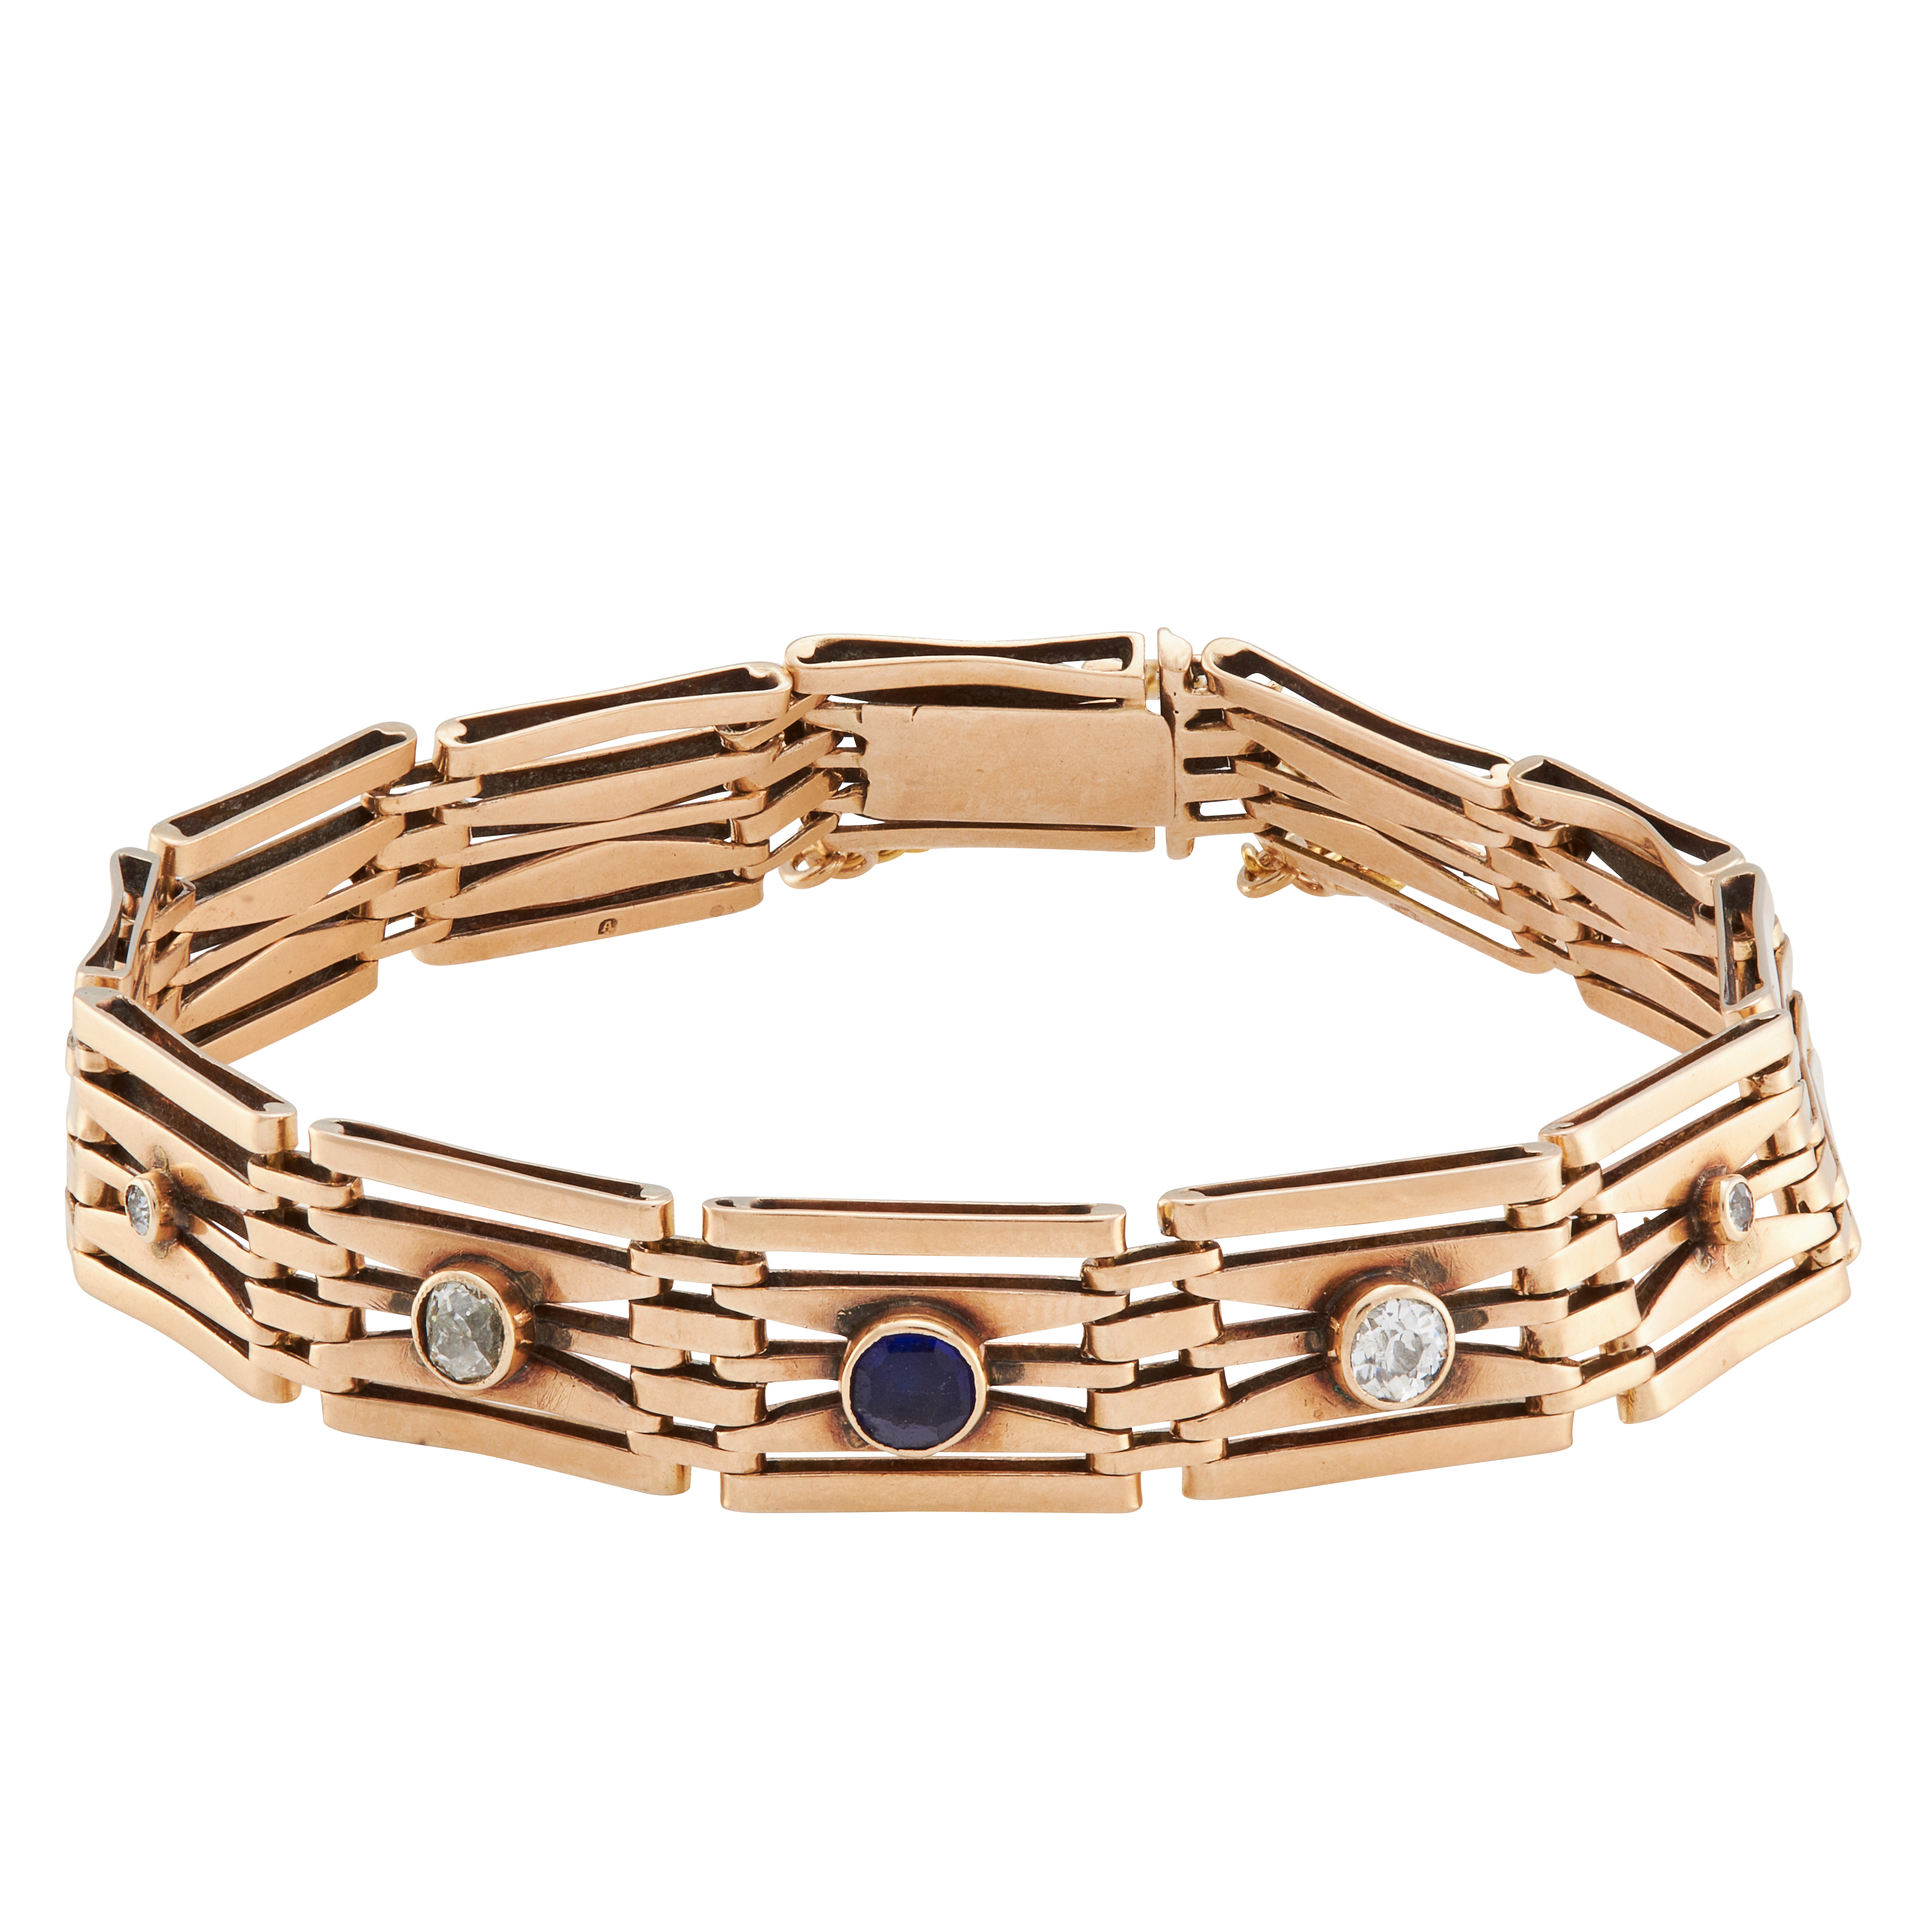 AN ANTIQUE SAPPHIRE AND DIAMOND BRACELET in 15ct yellow gold, of gate link design, set with a - Image 2 of 2